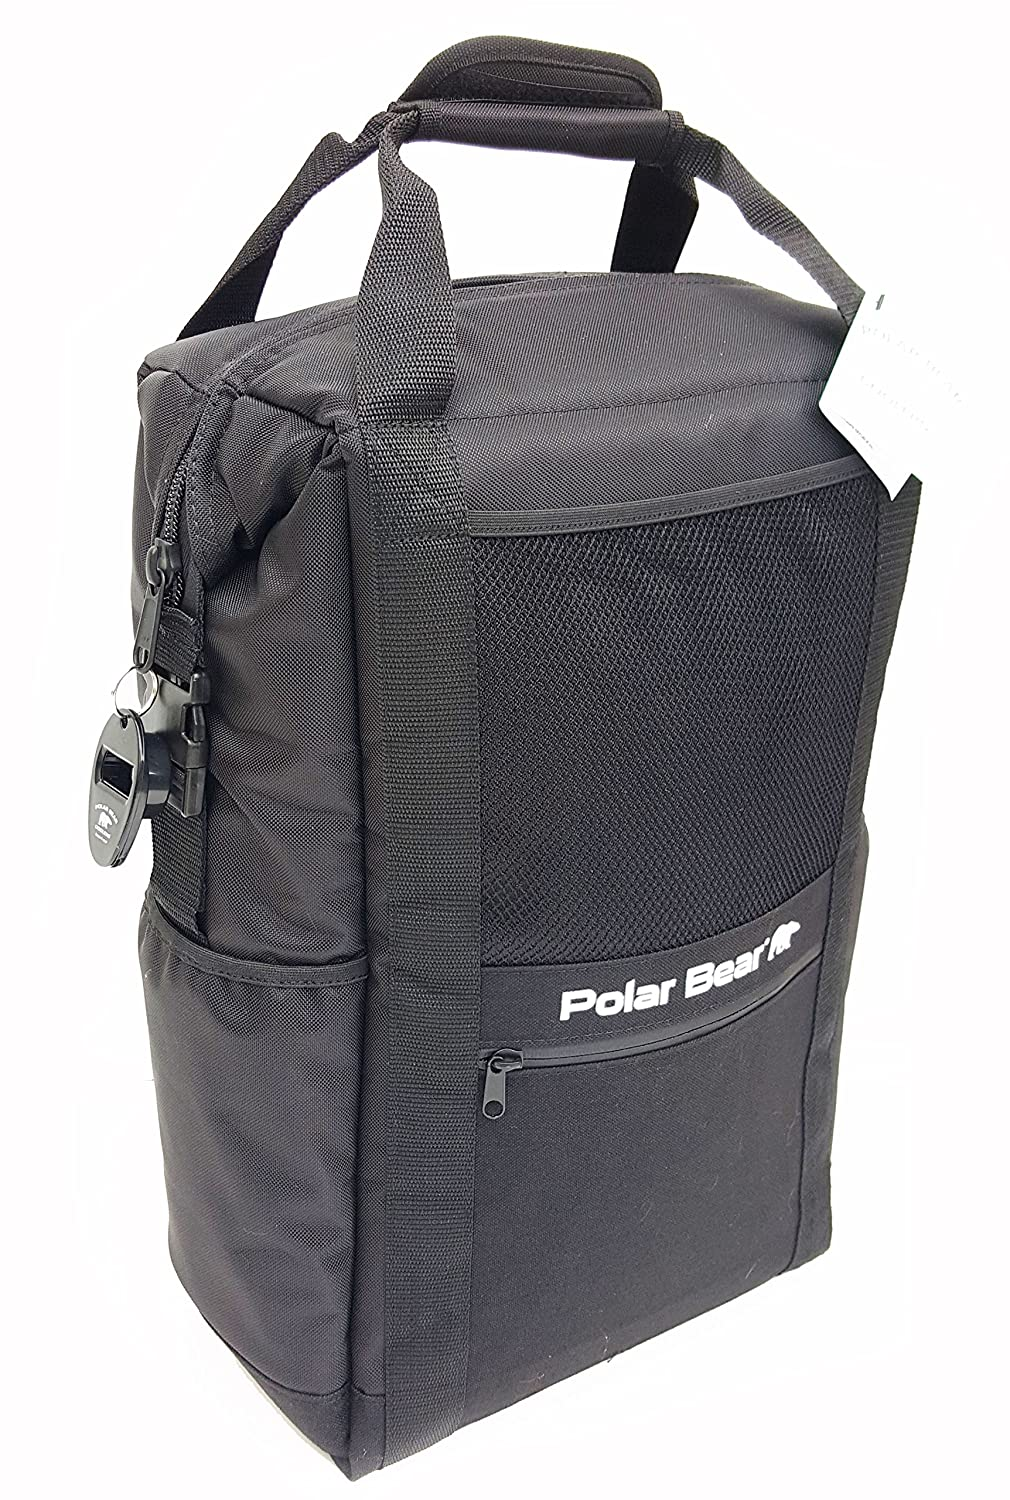 Polar Bear Coolers Soft Cooler, nero